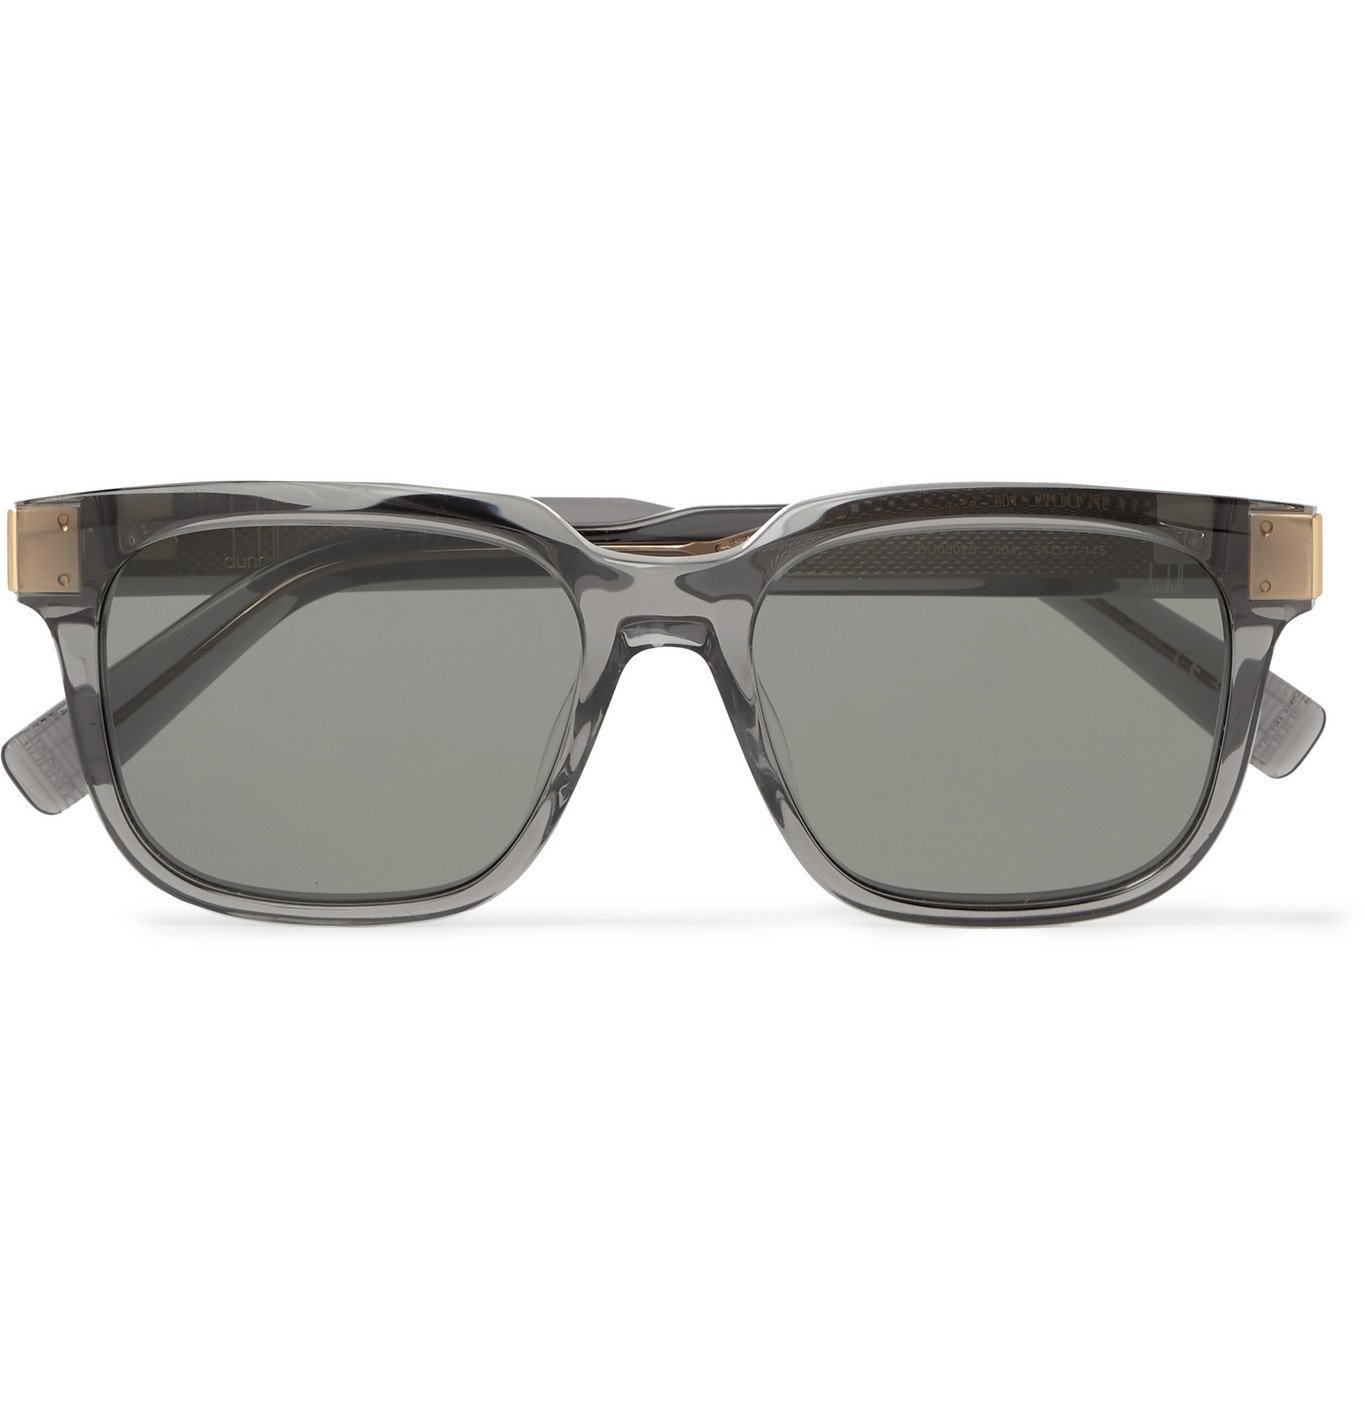 DUNHILL - Square-Frame Acetate and Gold-Tone Sunglasses - Gray